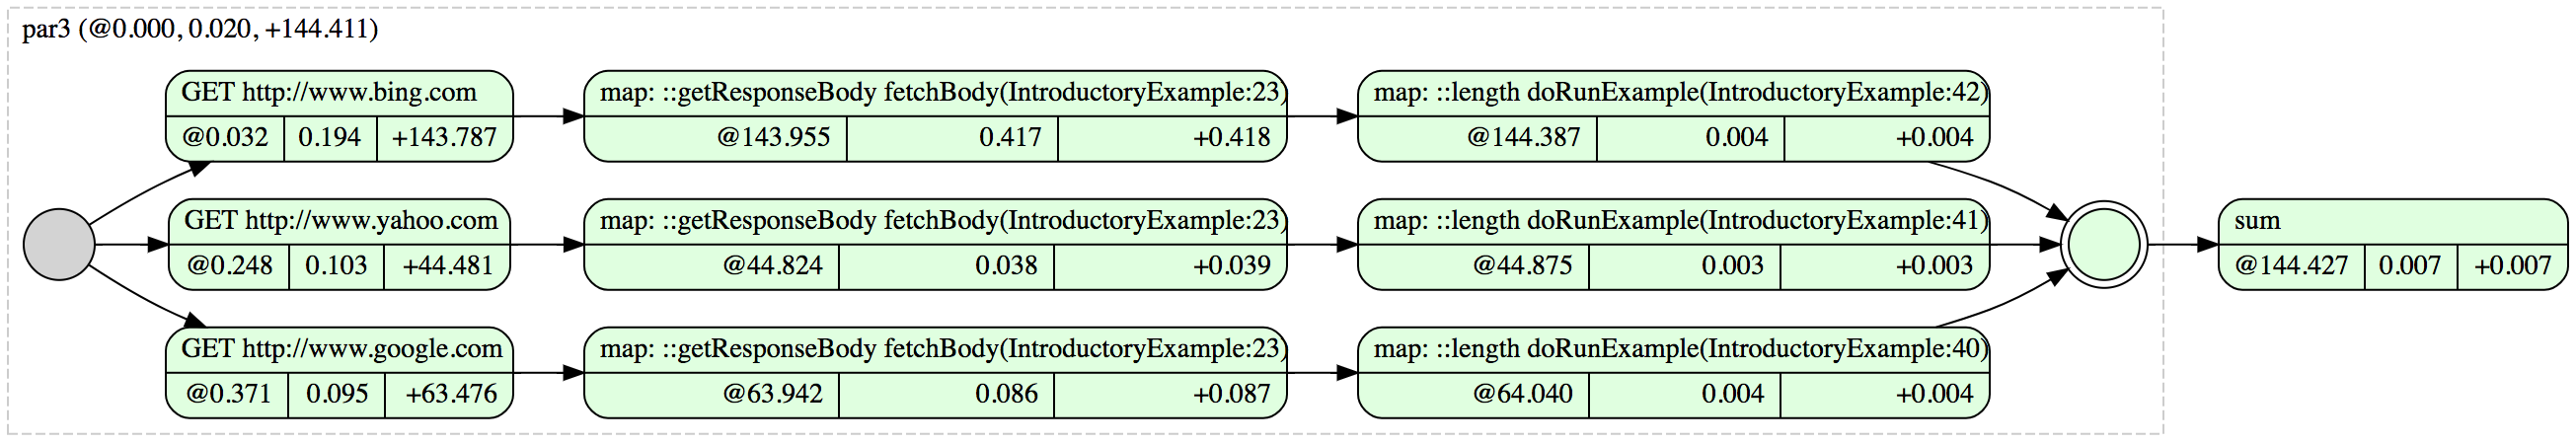 sum-lengths-graphviz-example.png